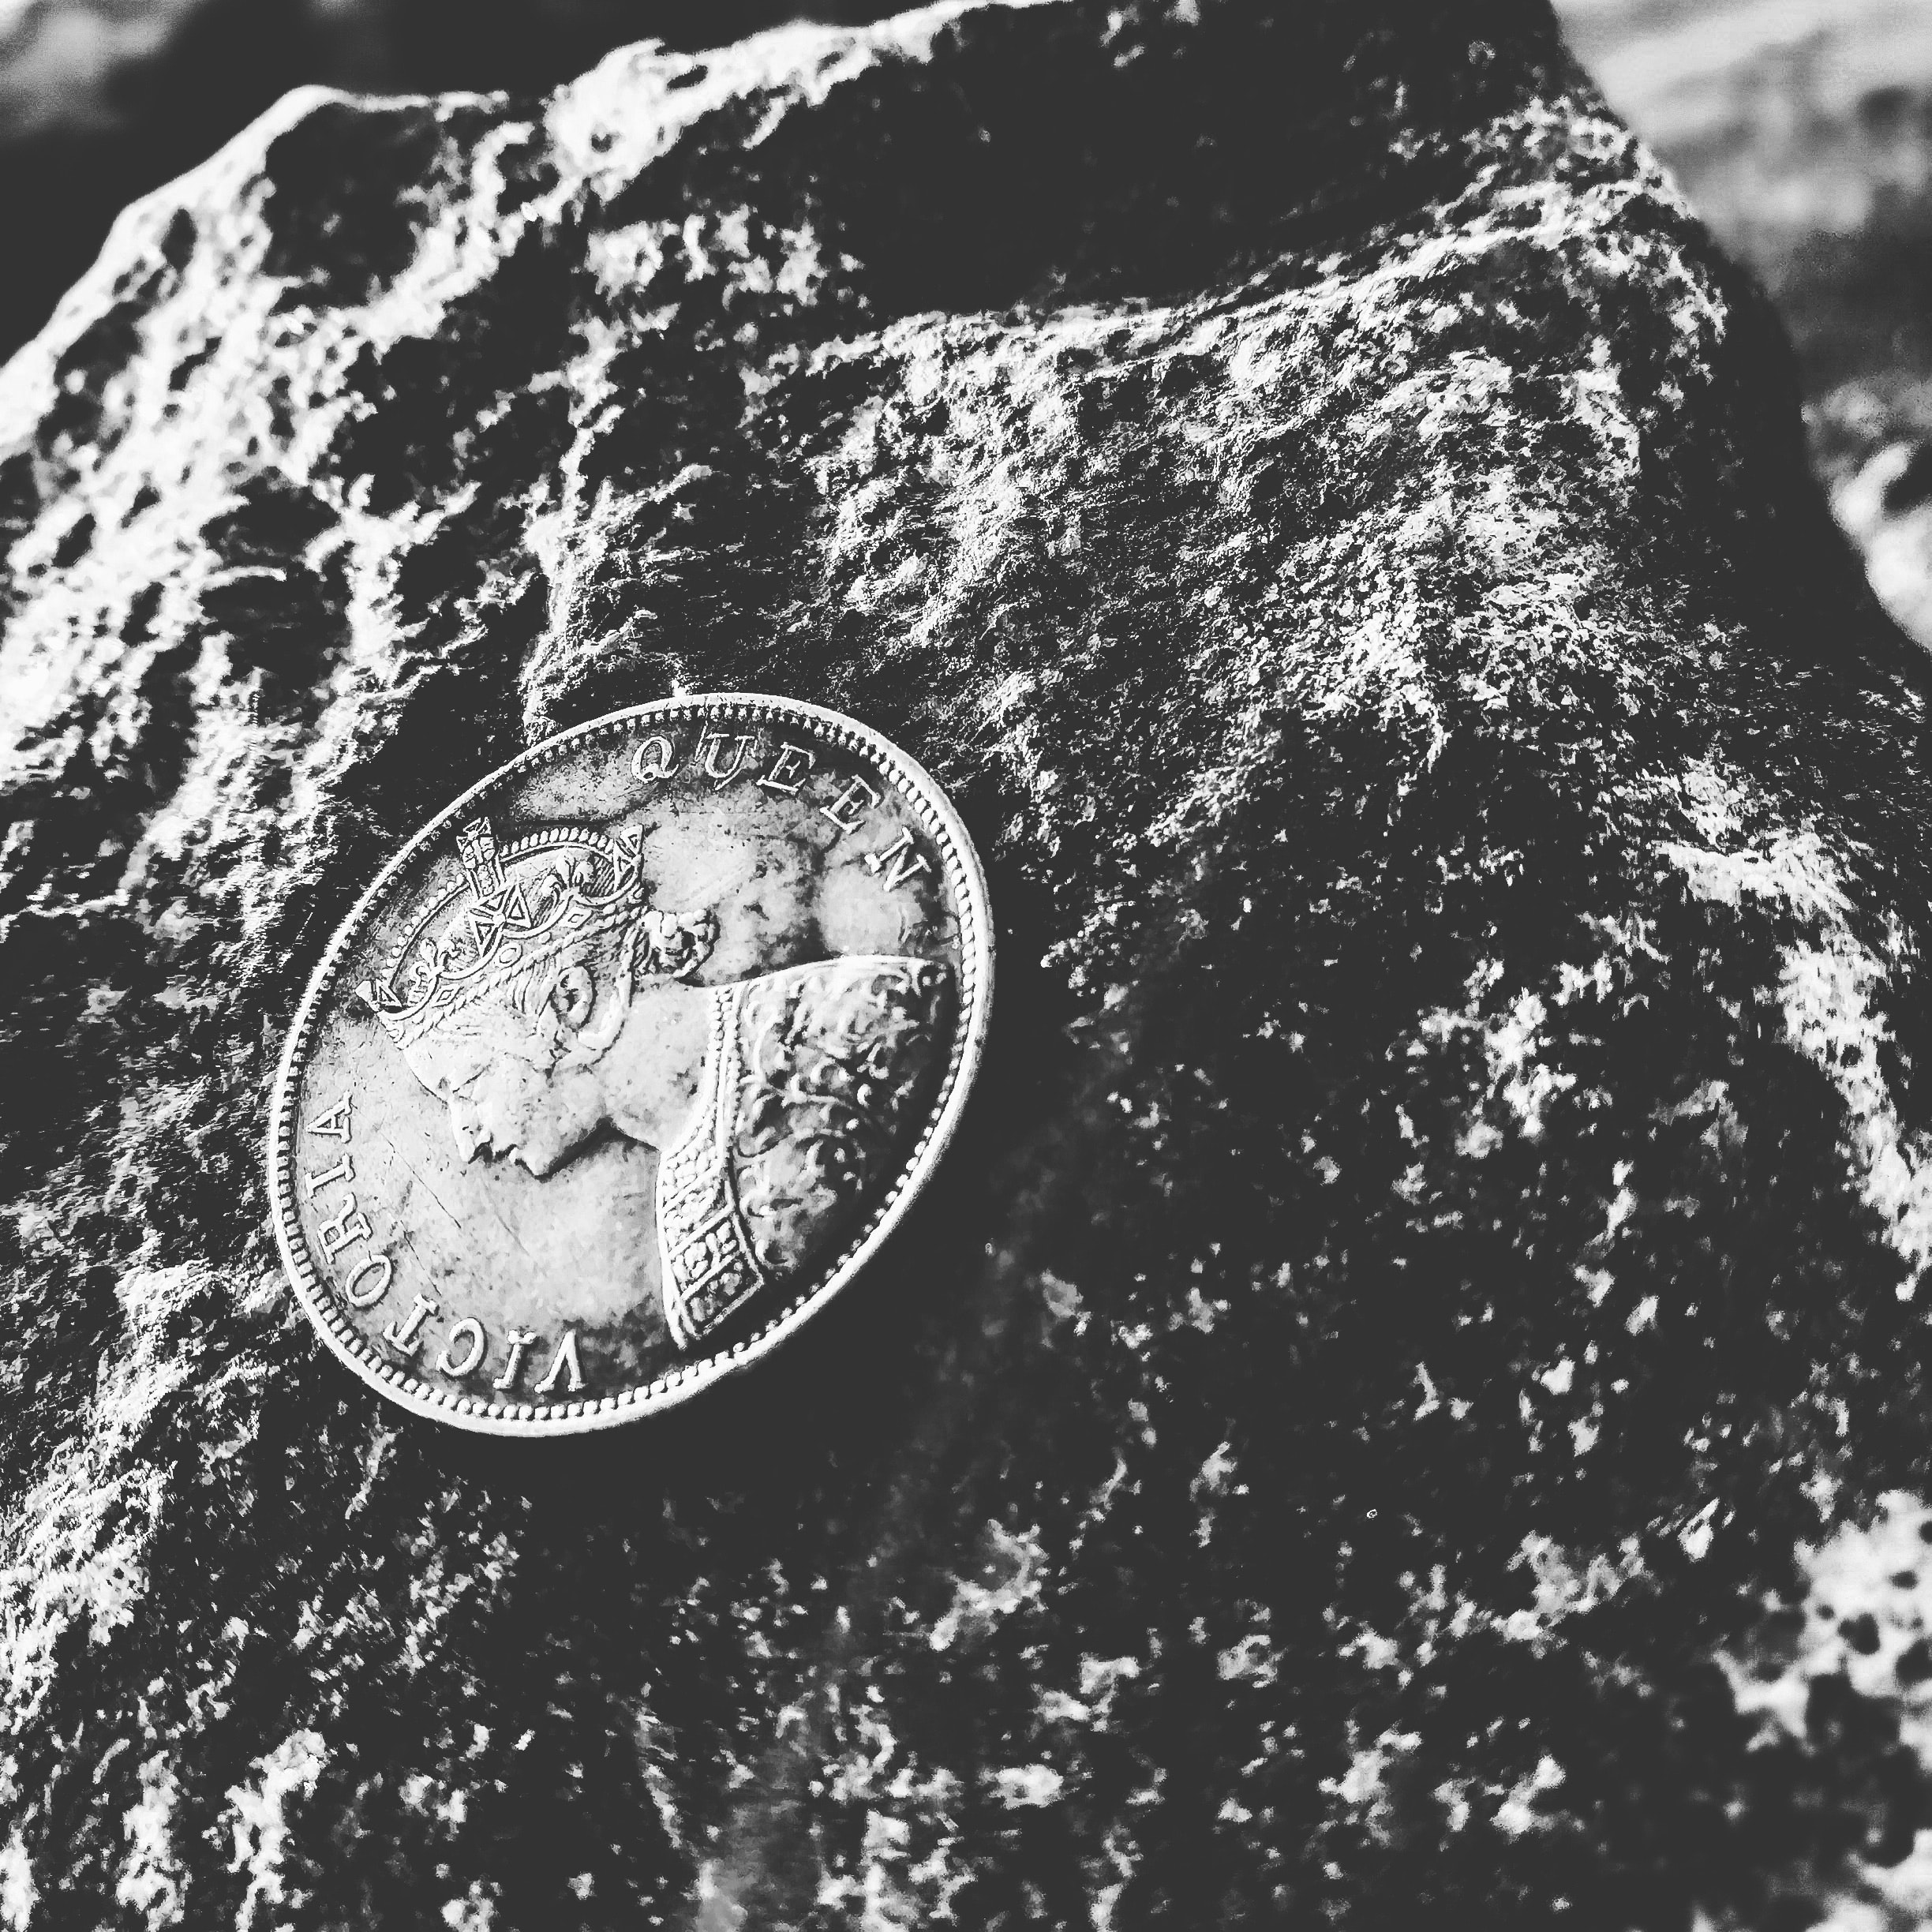 Grayscale Photo of Victoria Queen Coin on Top of Rock, Black and white, Close -up, Coin, Design, HQ Photo